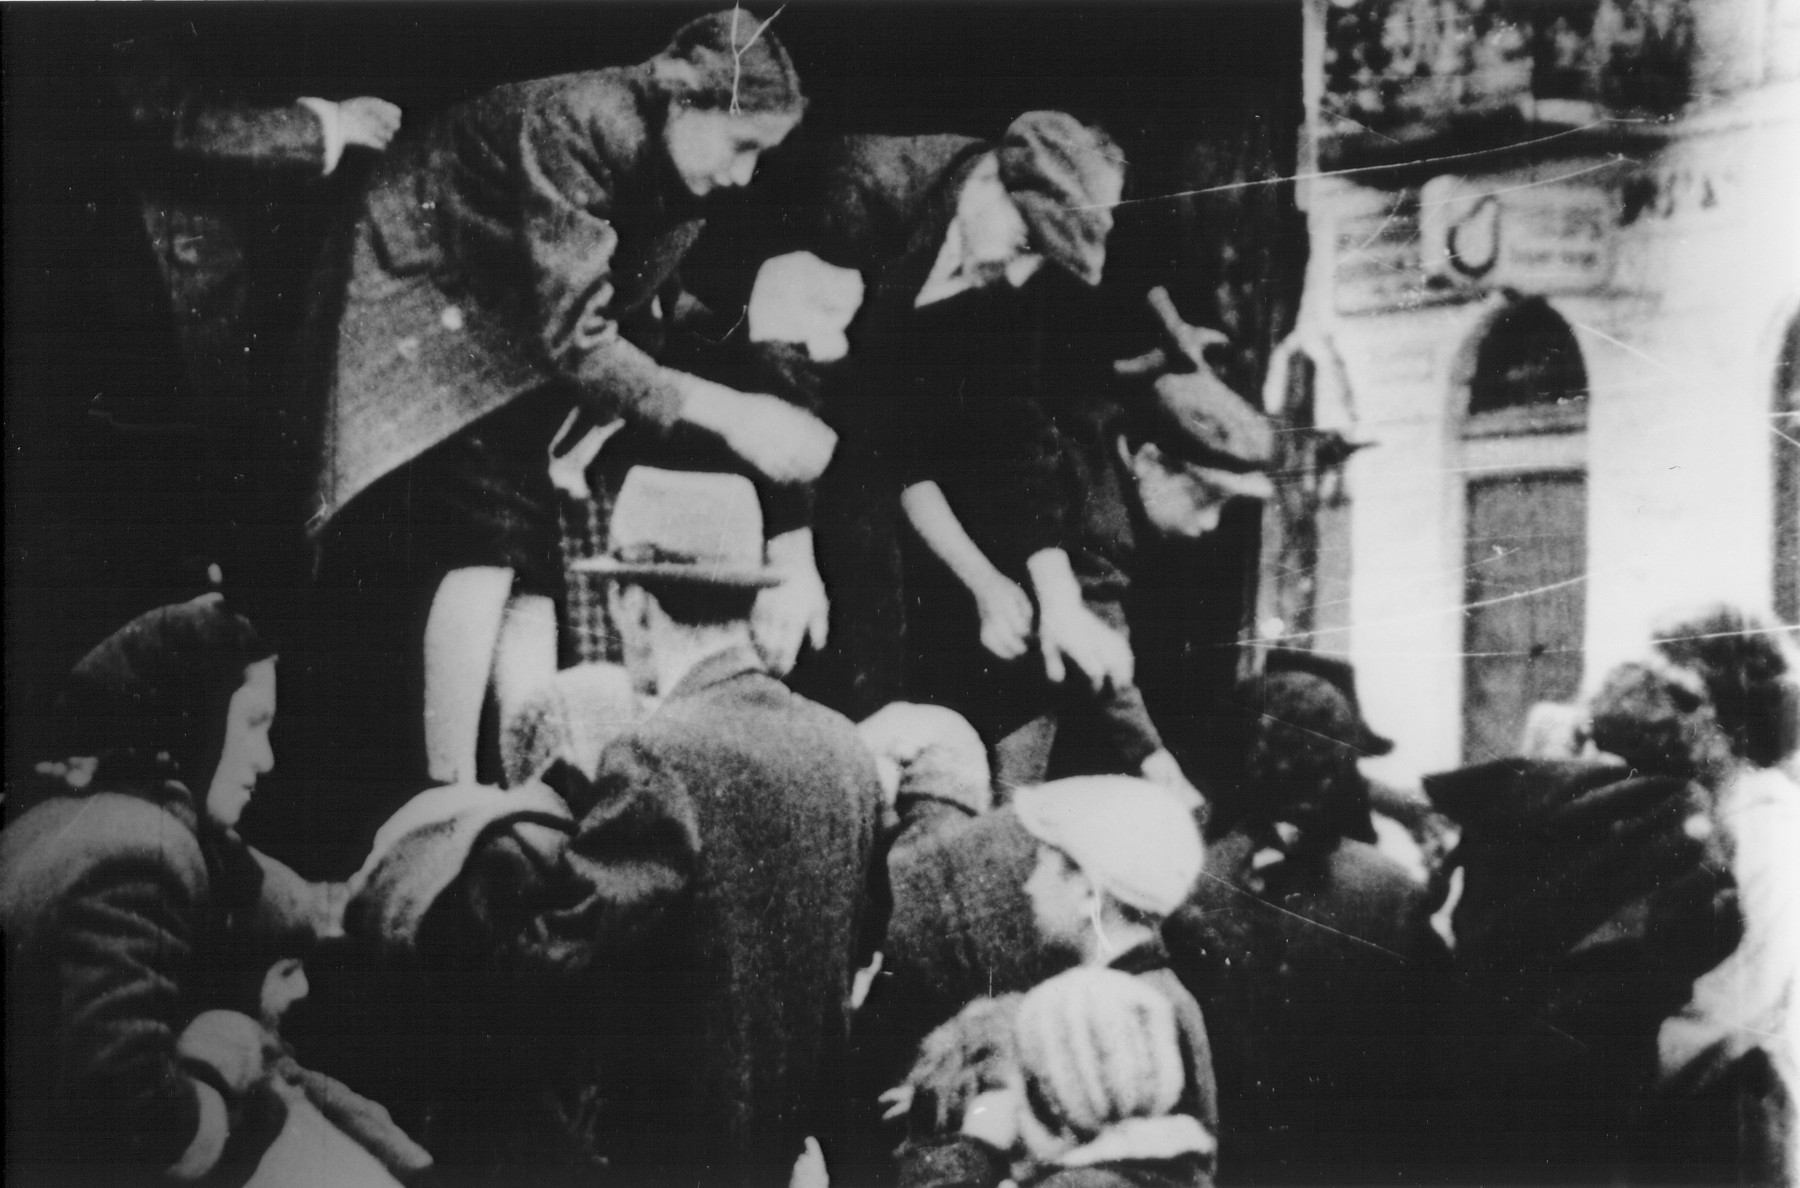 Jews captured by the SS during the suppression of the Warsaw ghetto uprising board a truck.